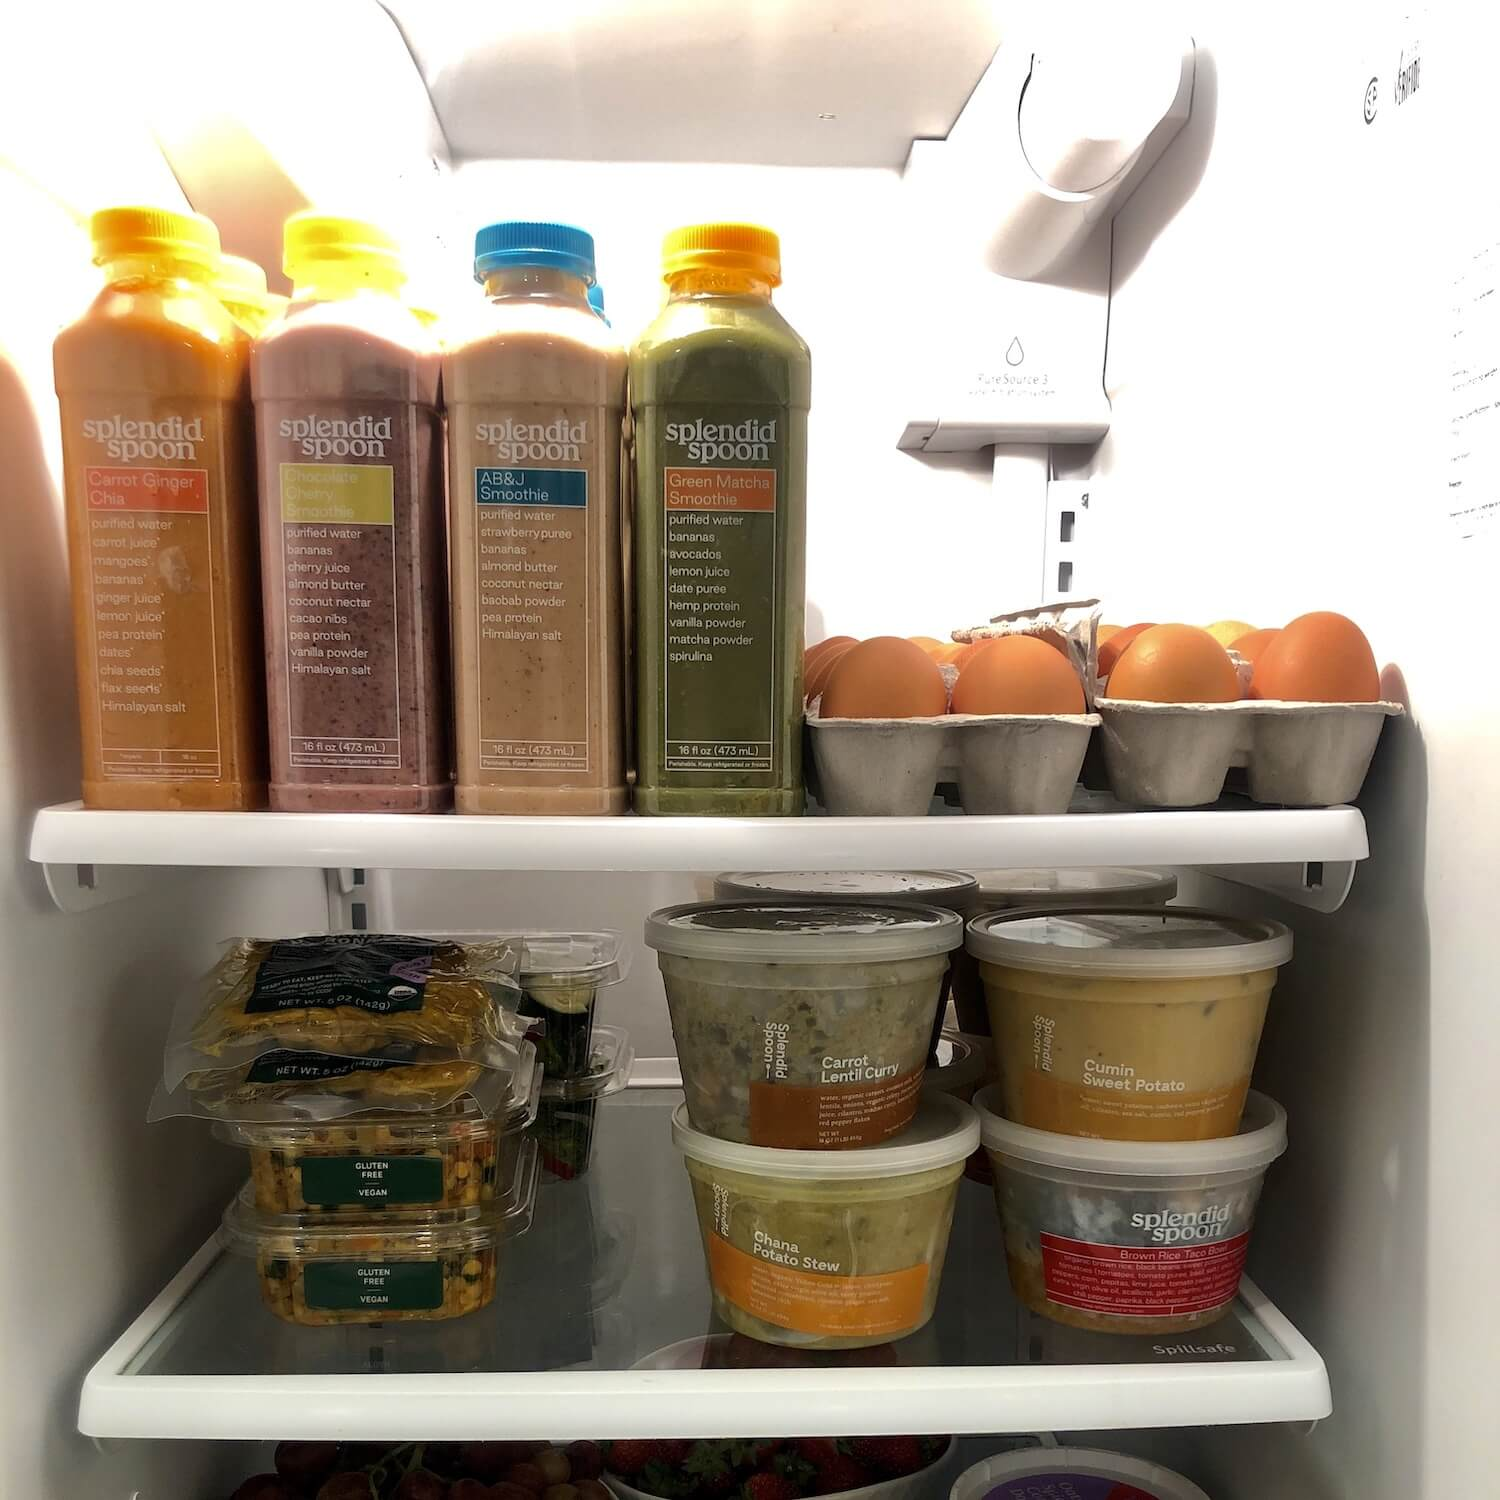 Fridge full of Splendid Spoon smoothies and soup and grain bowls